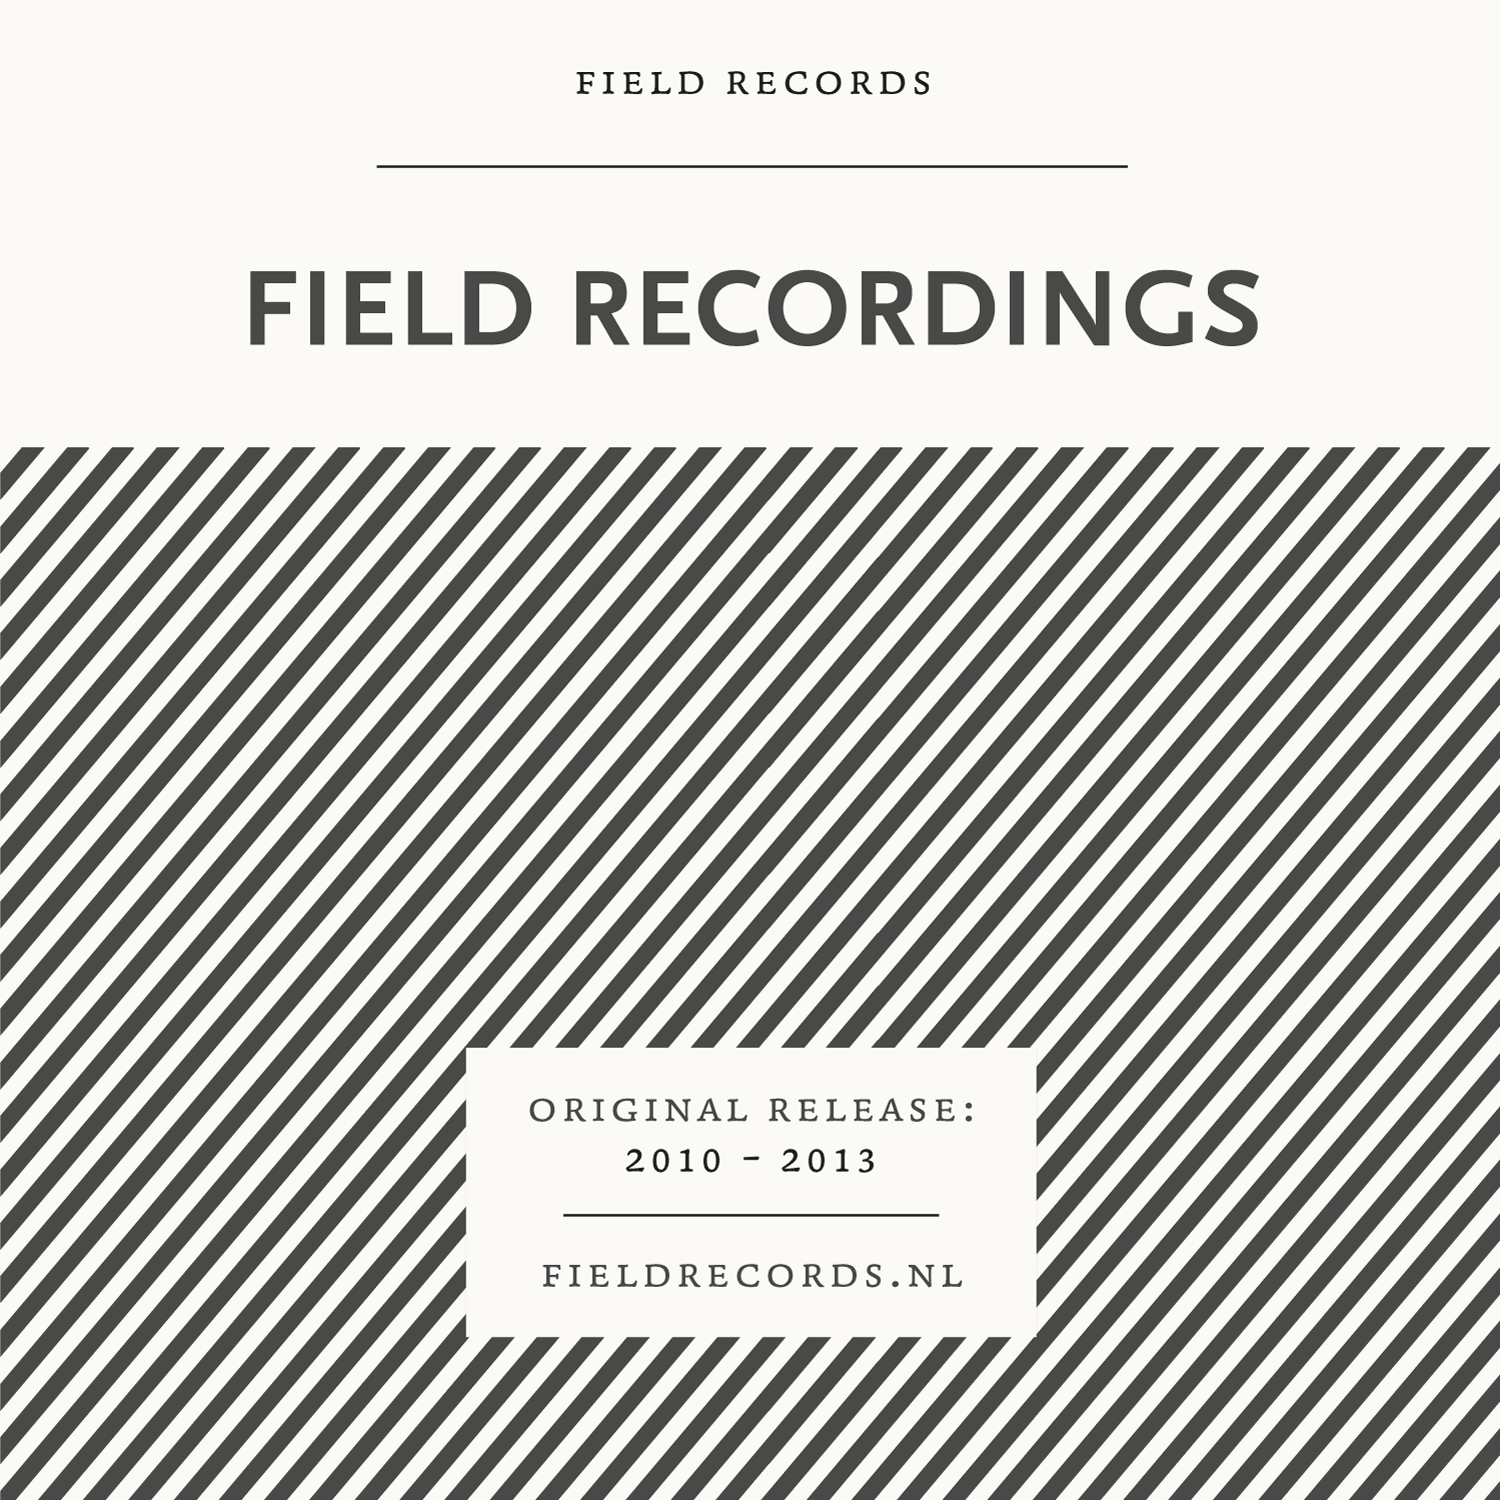 161207-recovered-fieldrecordings_r01